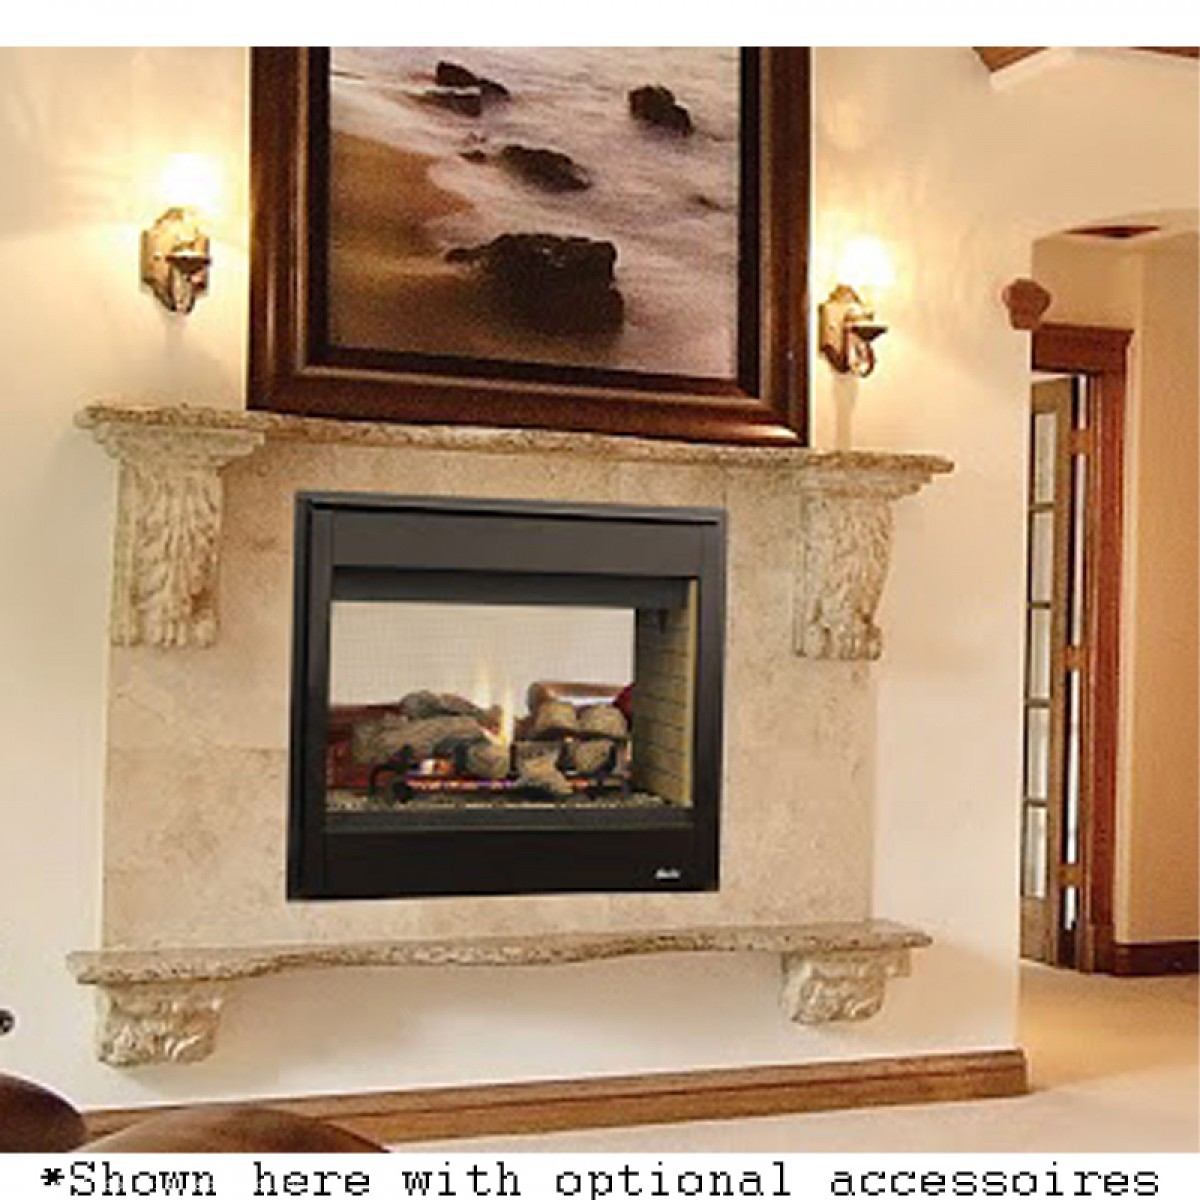 Get a great deal on the IHP Superior DRT4000 Multi-View Direct Vent Gas Fireplace-F2279 at iBuyFireplaces. We stock the full line of IHP Superior Fireplaces at iBuyFireplaces.